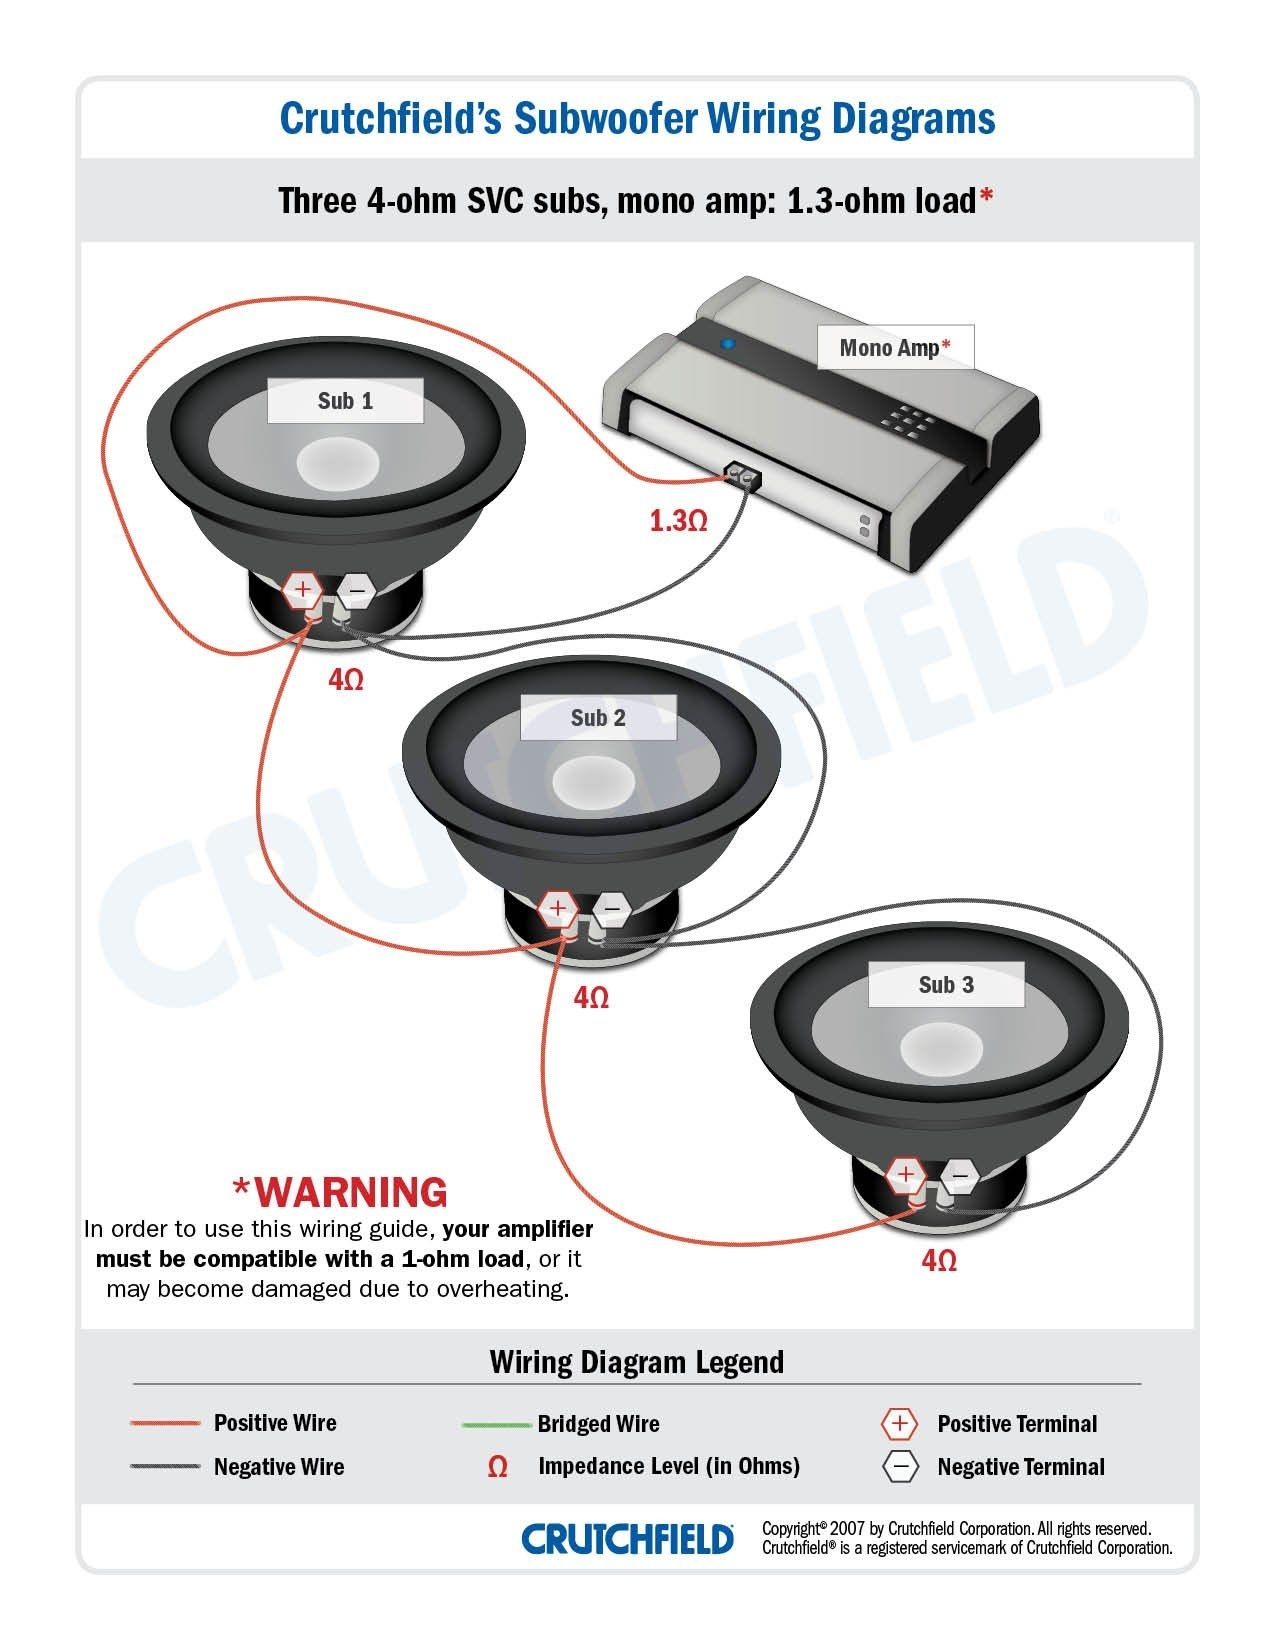 Subwoofer Wiring Diagrams How To Wire Your Subs Regarding